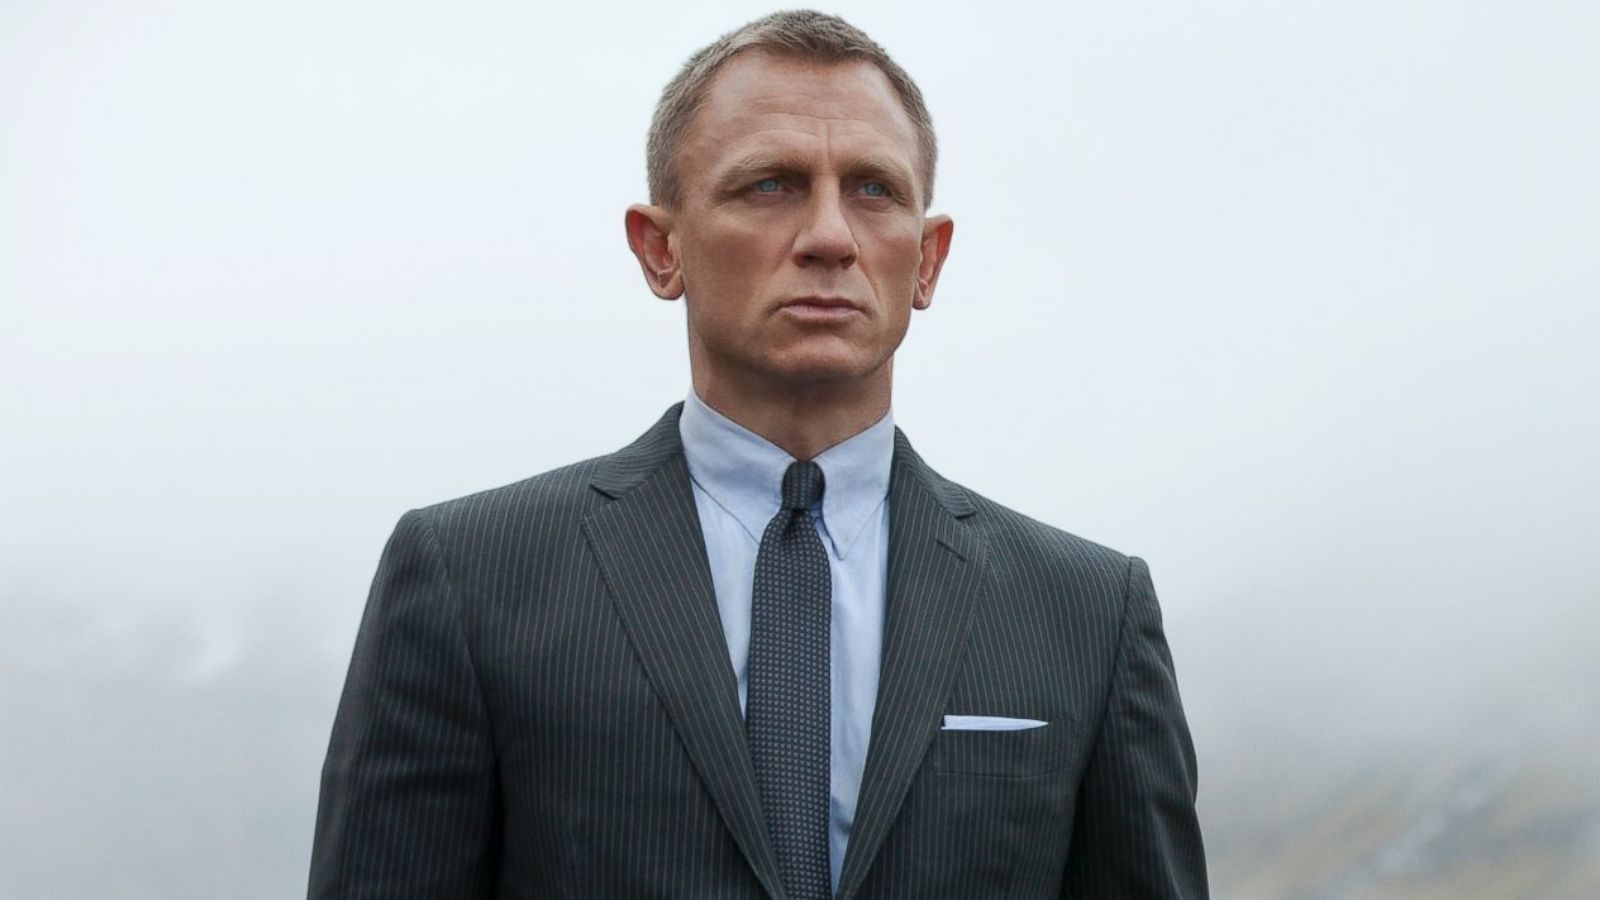 Watch: Daniel Craig Confirms He's Returning As James Bond for the Fifth Time Watch: Daniel Craig Confirms He's Returning As James Bond for the Fifth Time new pics